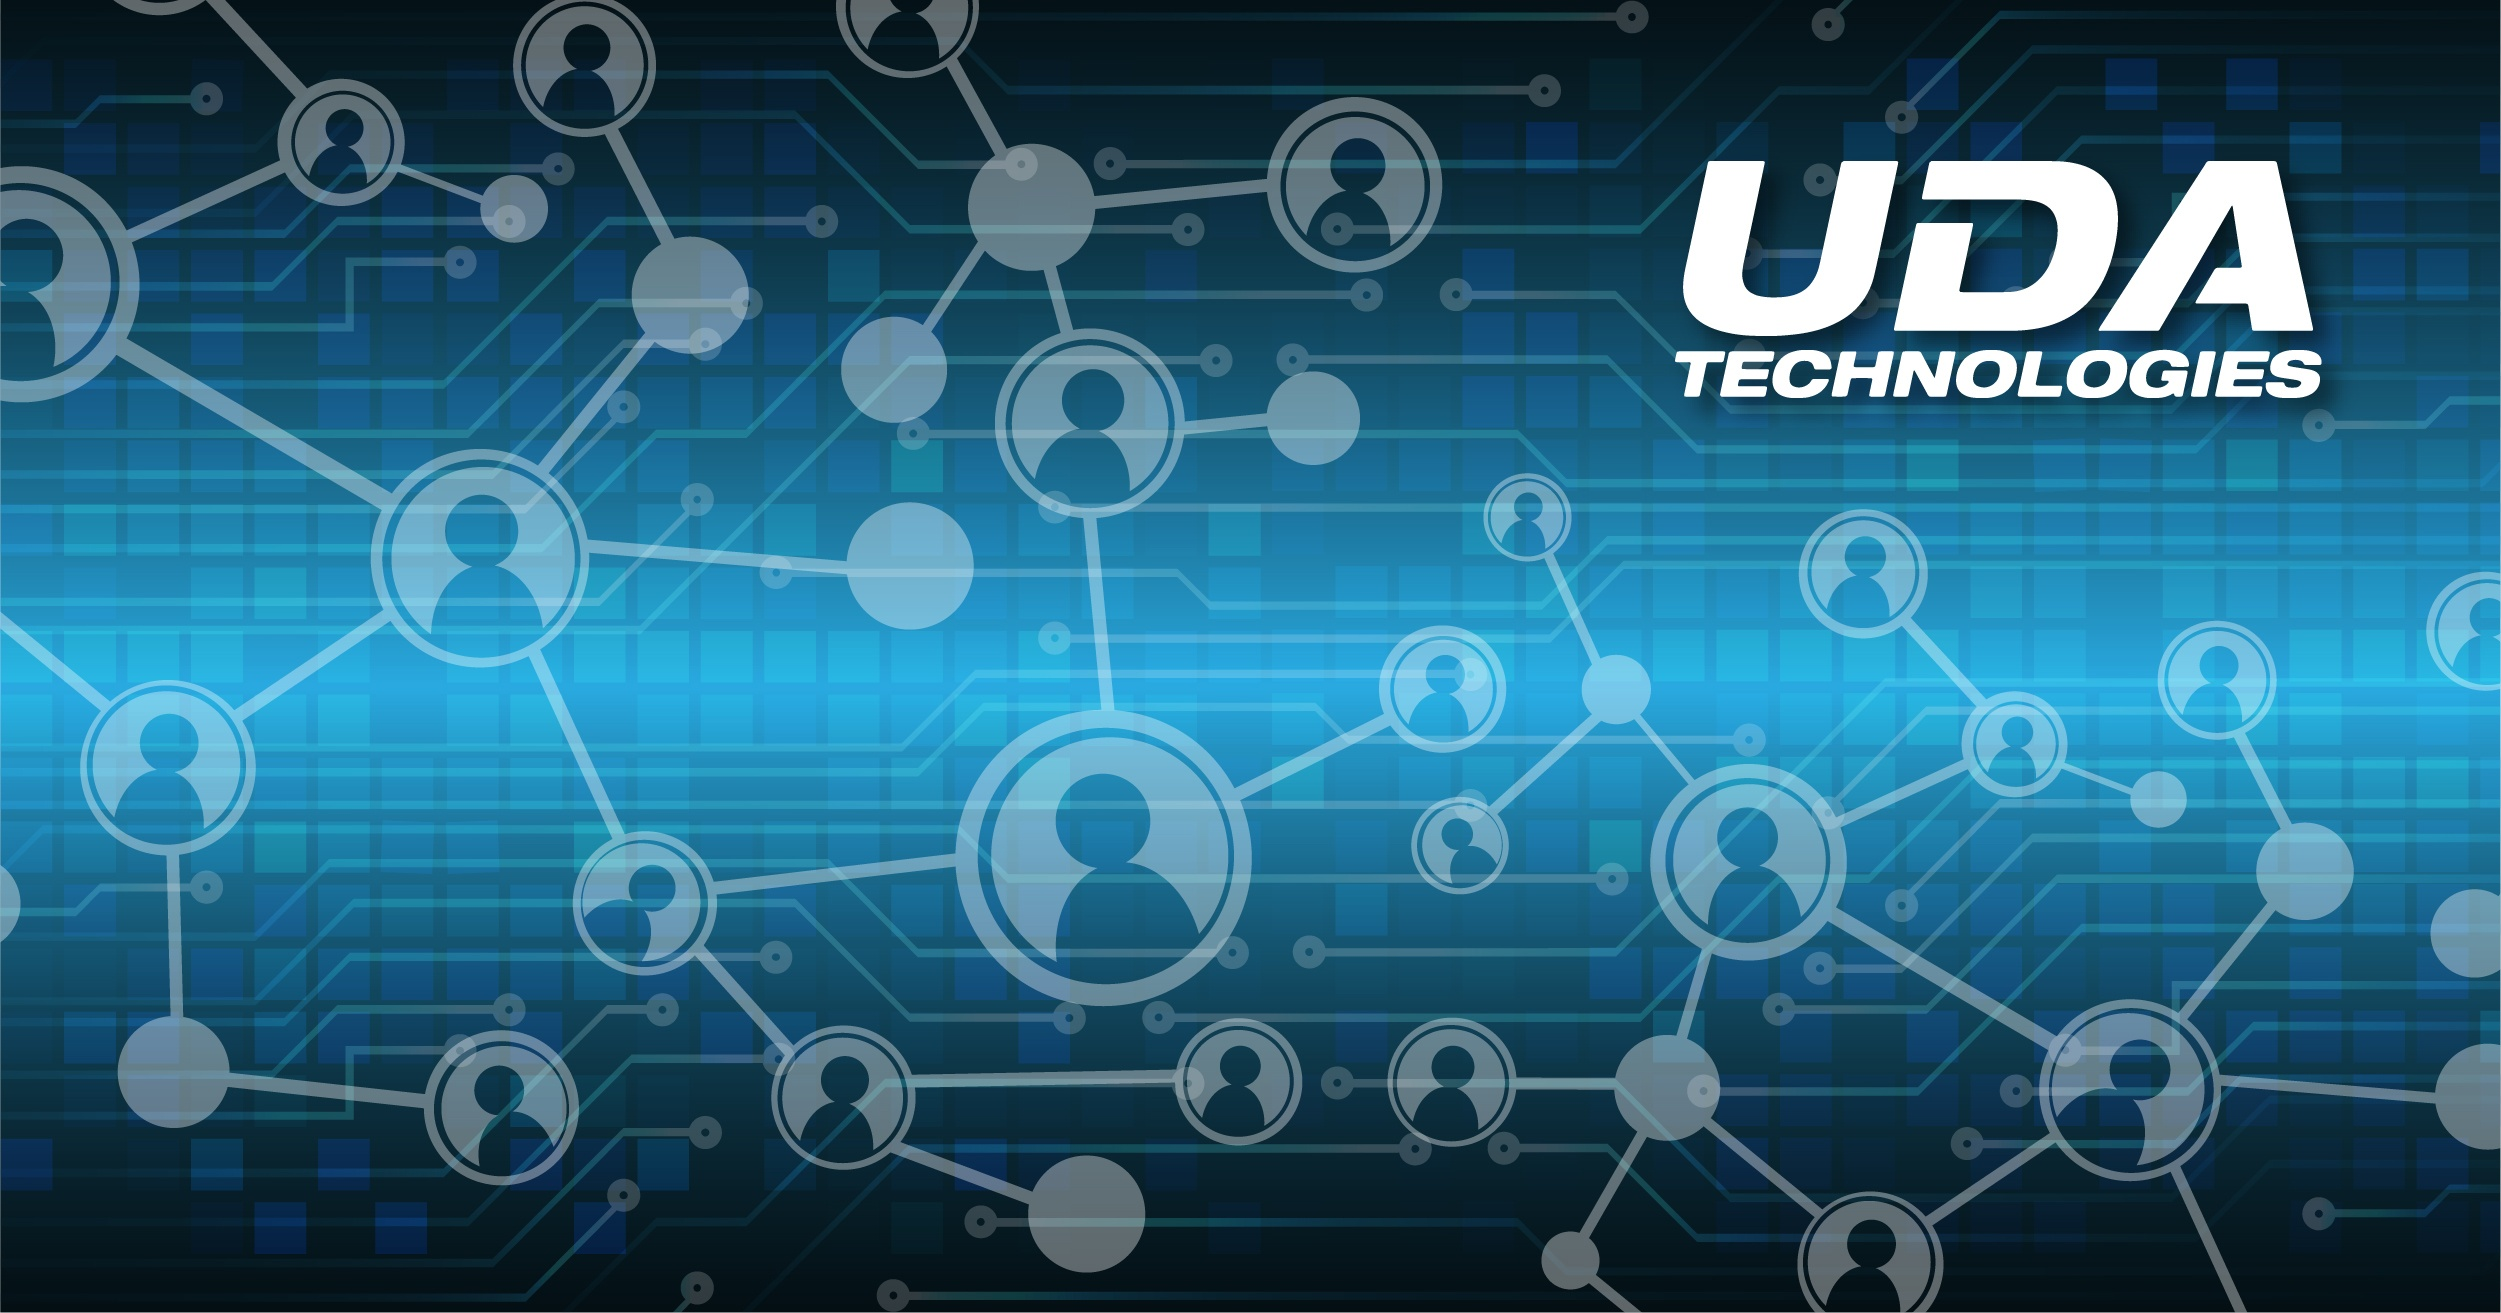 UDA Expands Internal Technology to Support Growing Client Base